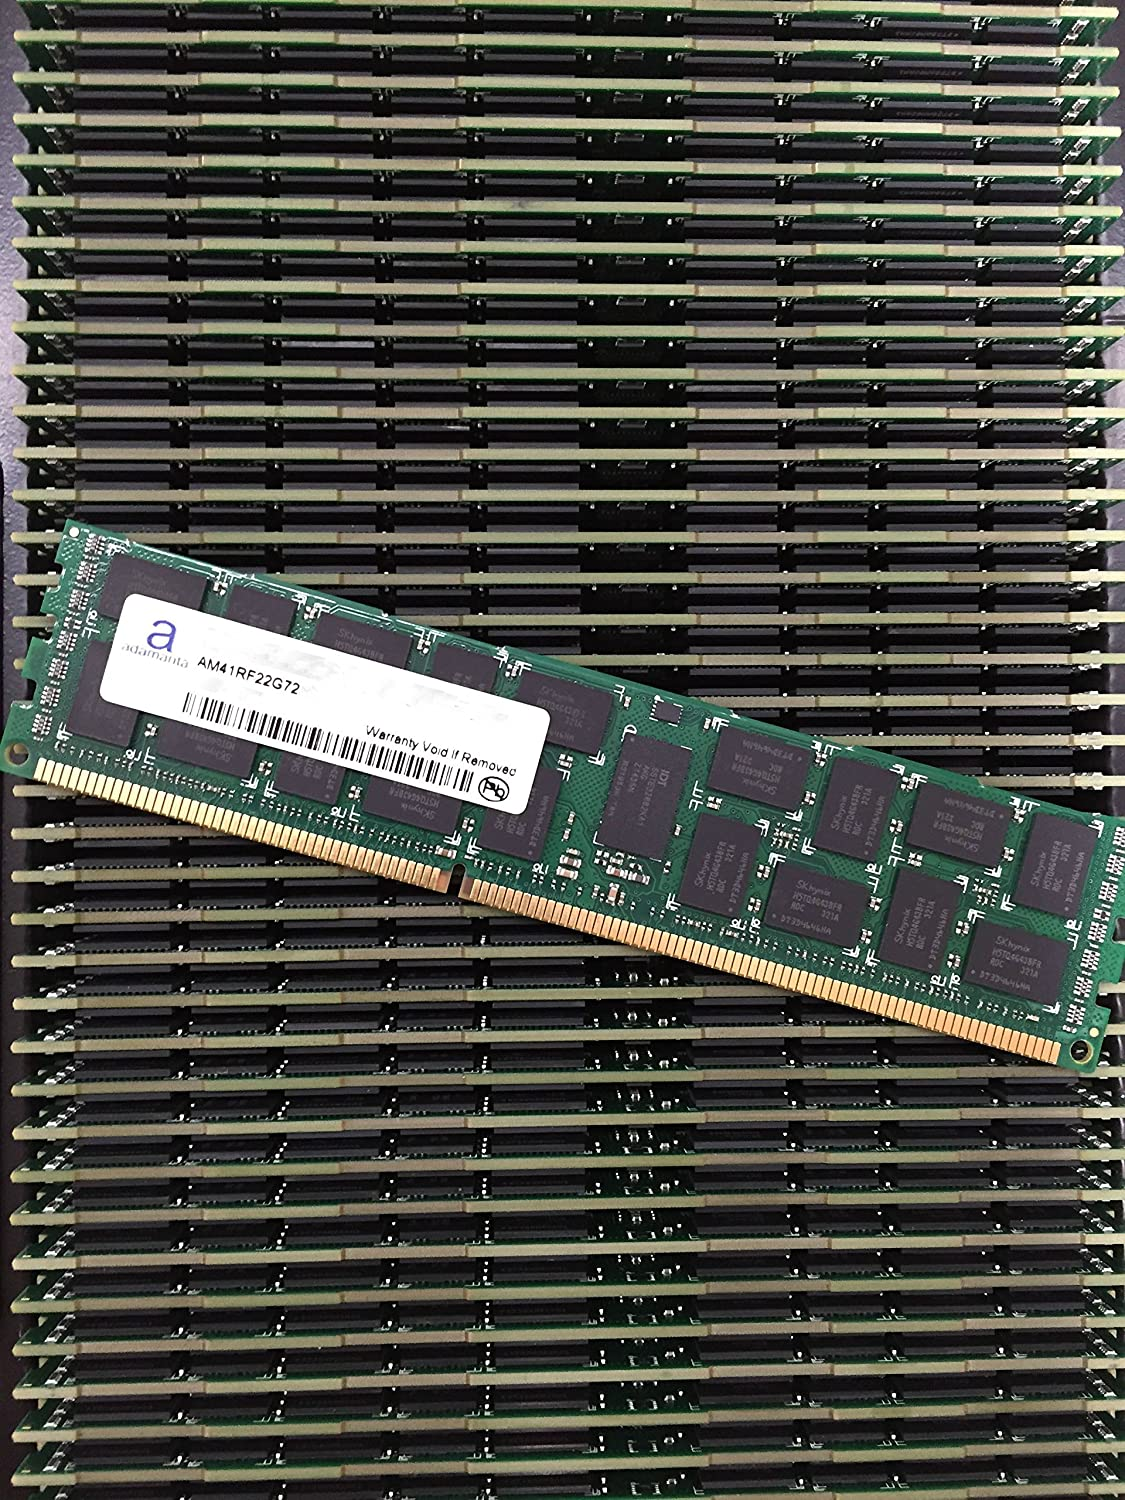 Server Memory Upgrade for HP Proliant BL2x220c G7 with Intel Xeon 5600 Series CPU DDR3 1333Mhz PC3-10600 ECC Registered 2Rx4 CL9 1.35v 2x16GB Adamanta 32GB